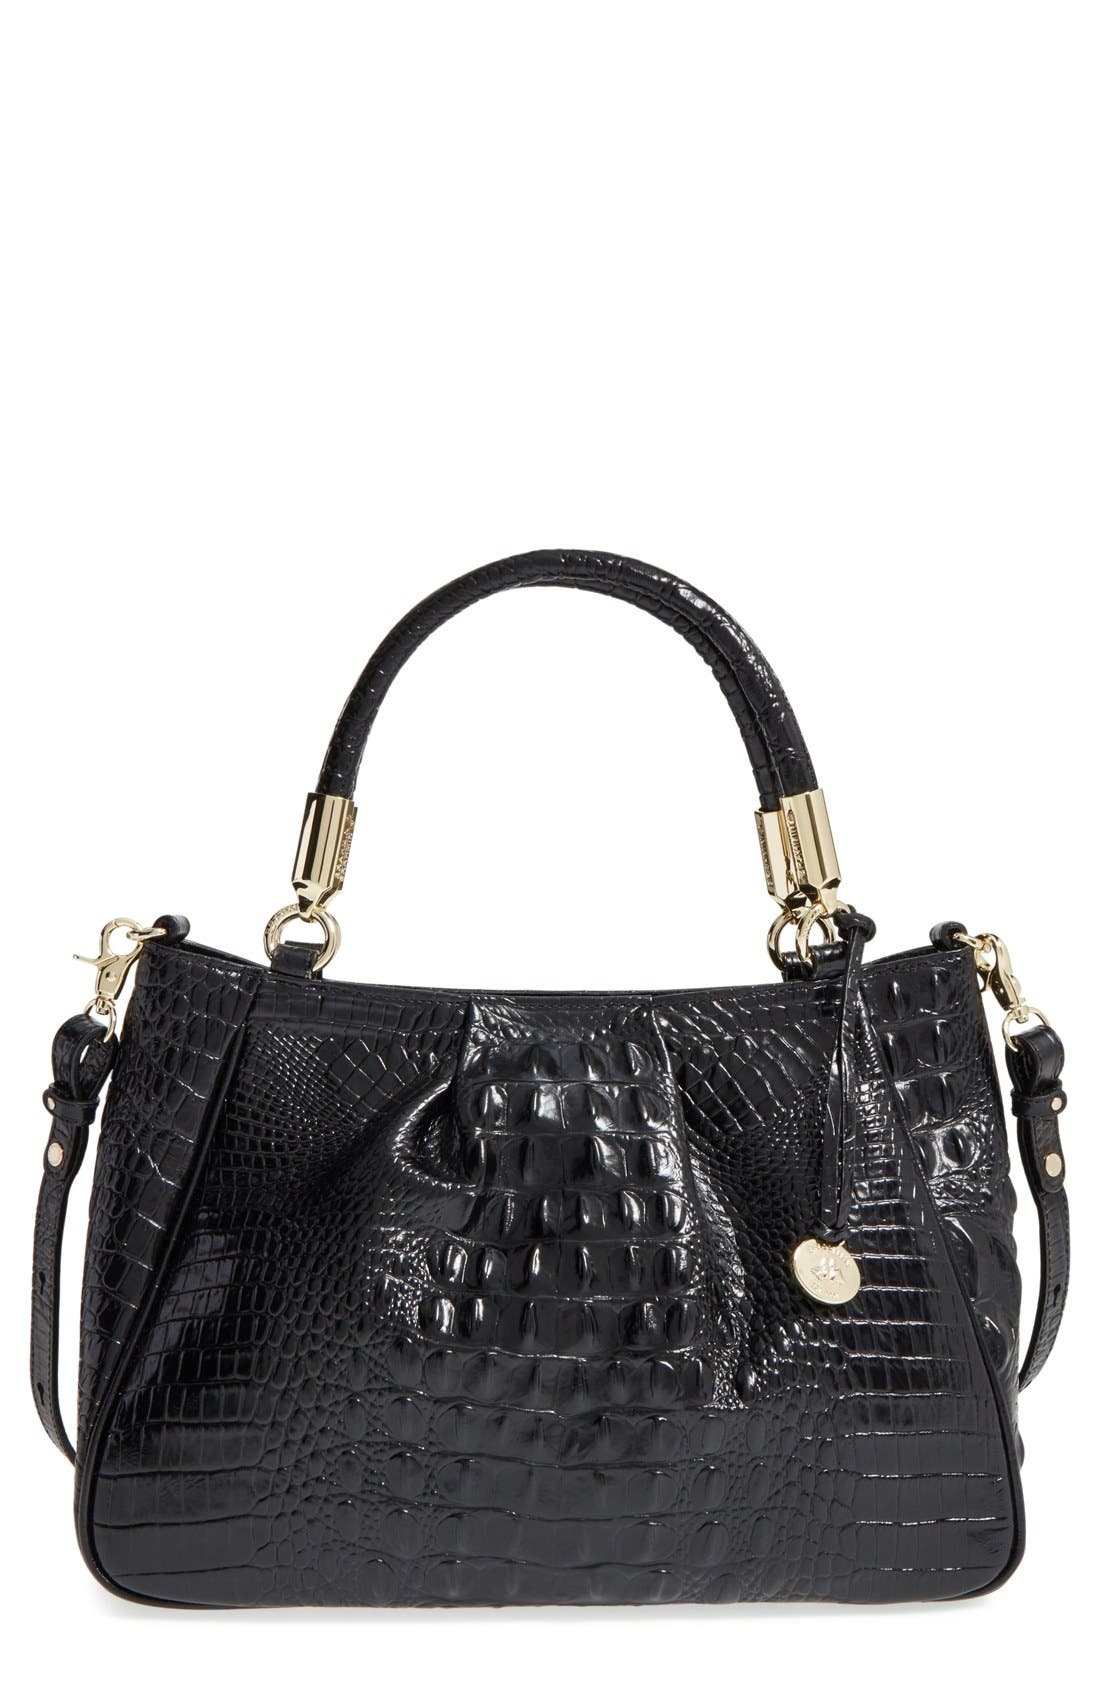 BRAHMIN 'Ruby' Croc Embossed Leather Satchel